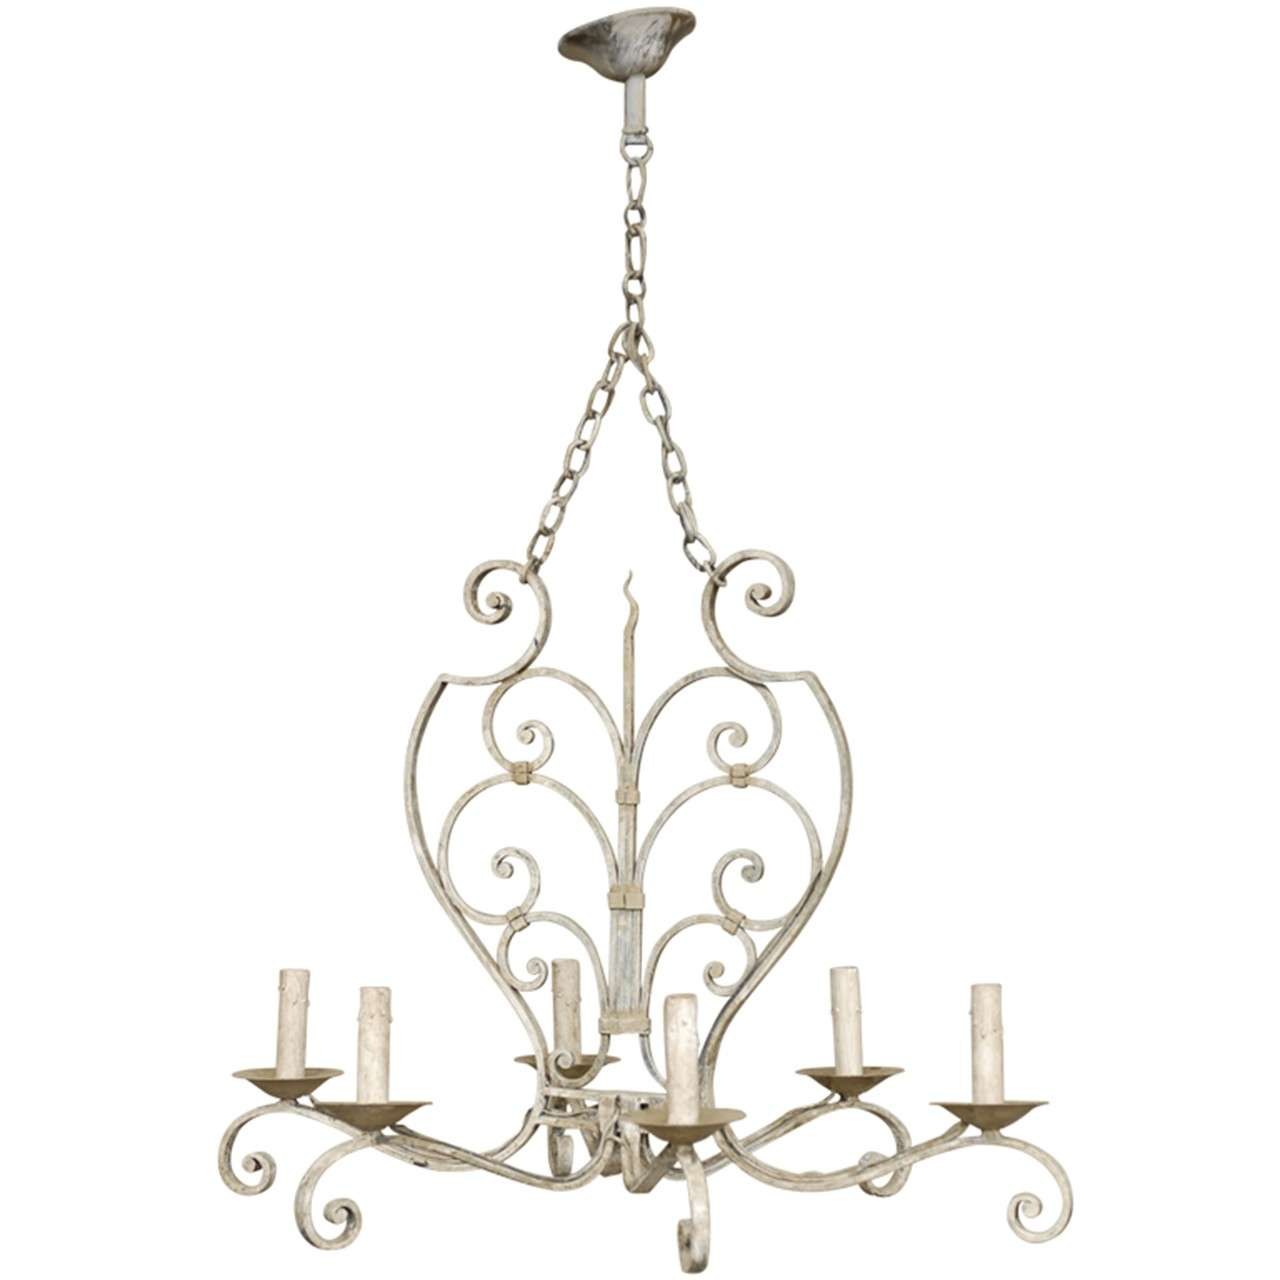 French Six-Light Grey Blue Painted Iron Chandelier with Scroll Motifs